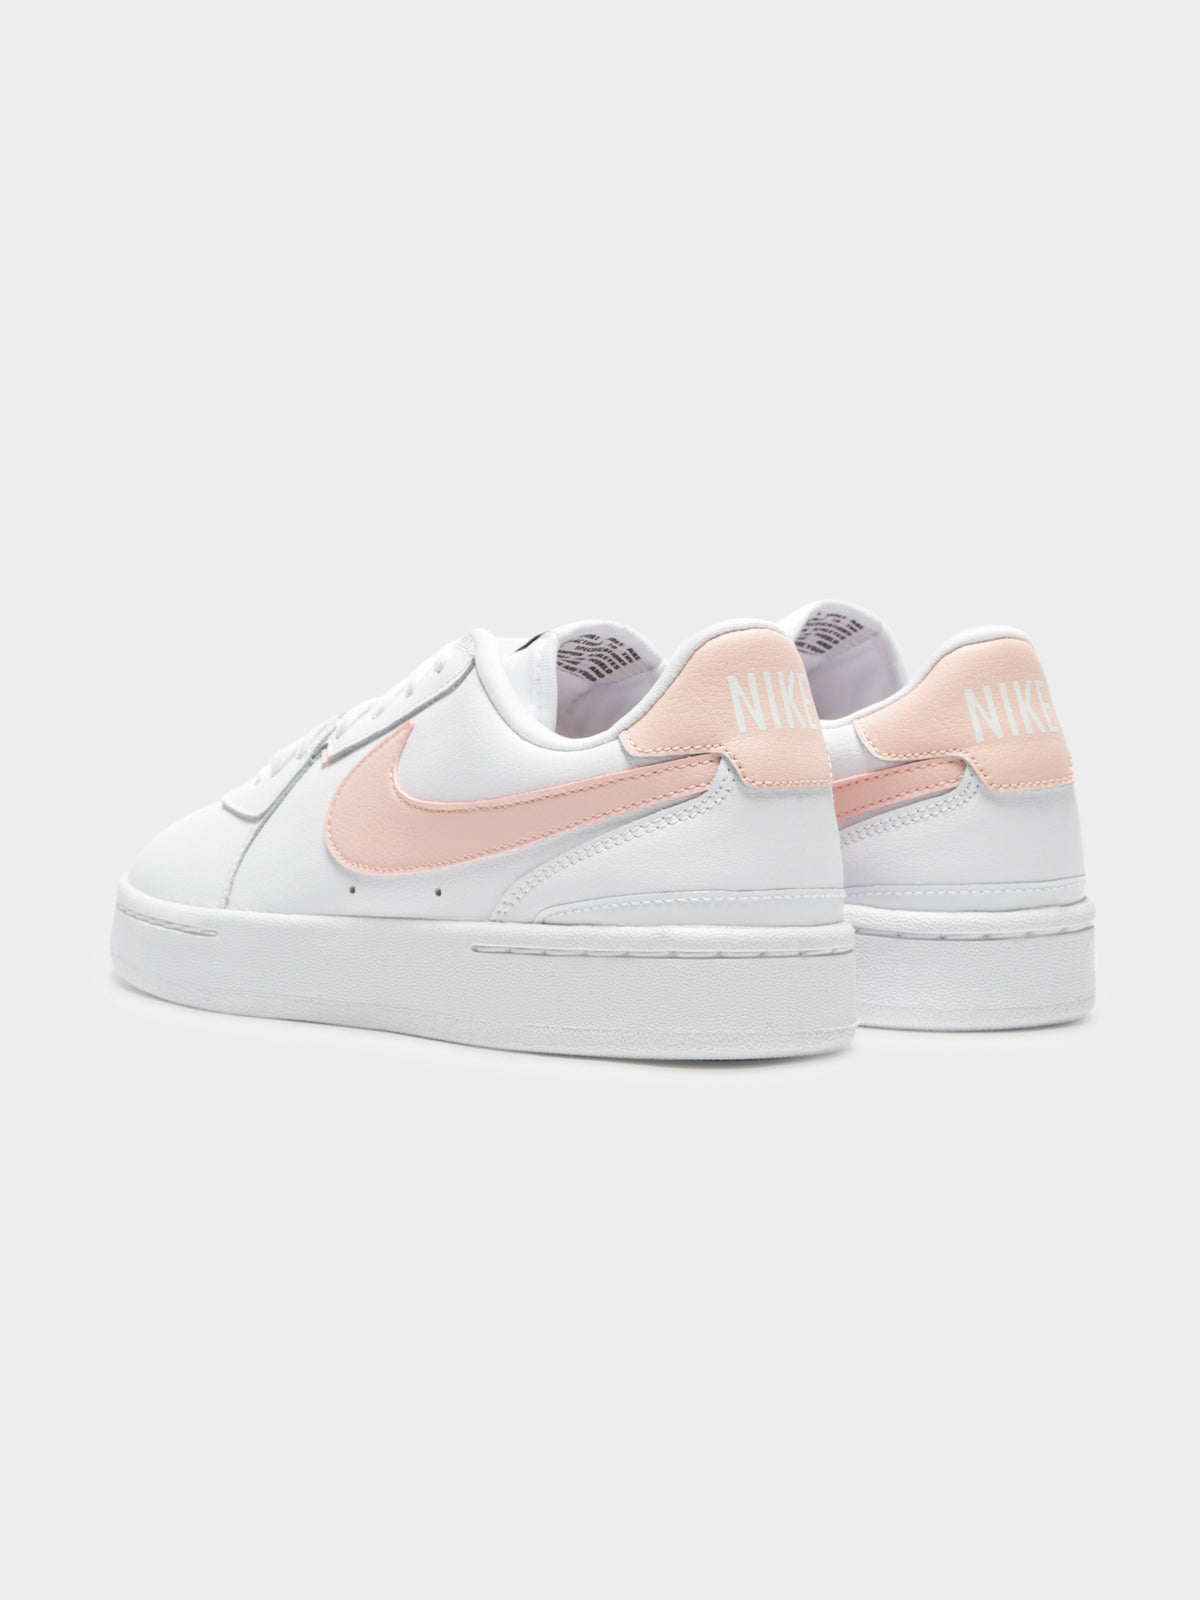 Womens Court Blanc Sneakers in White & Washed Coral